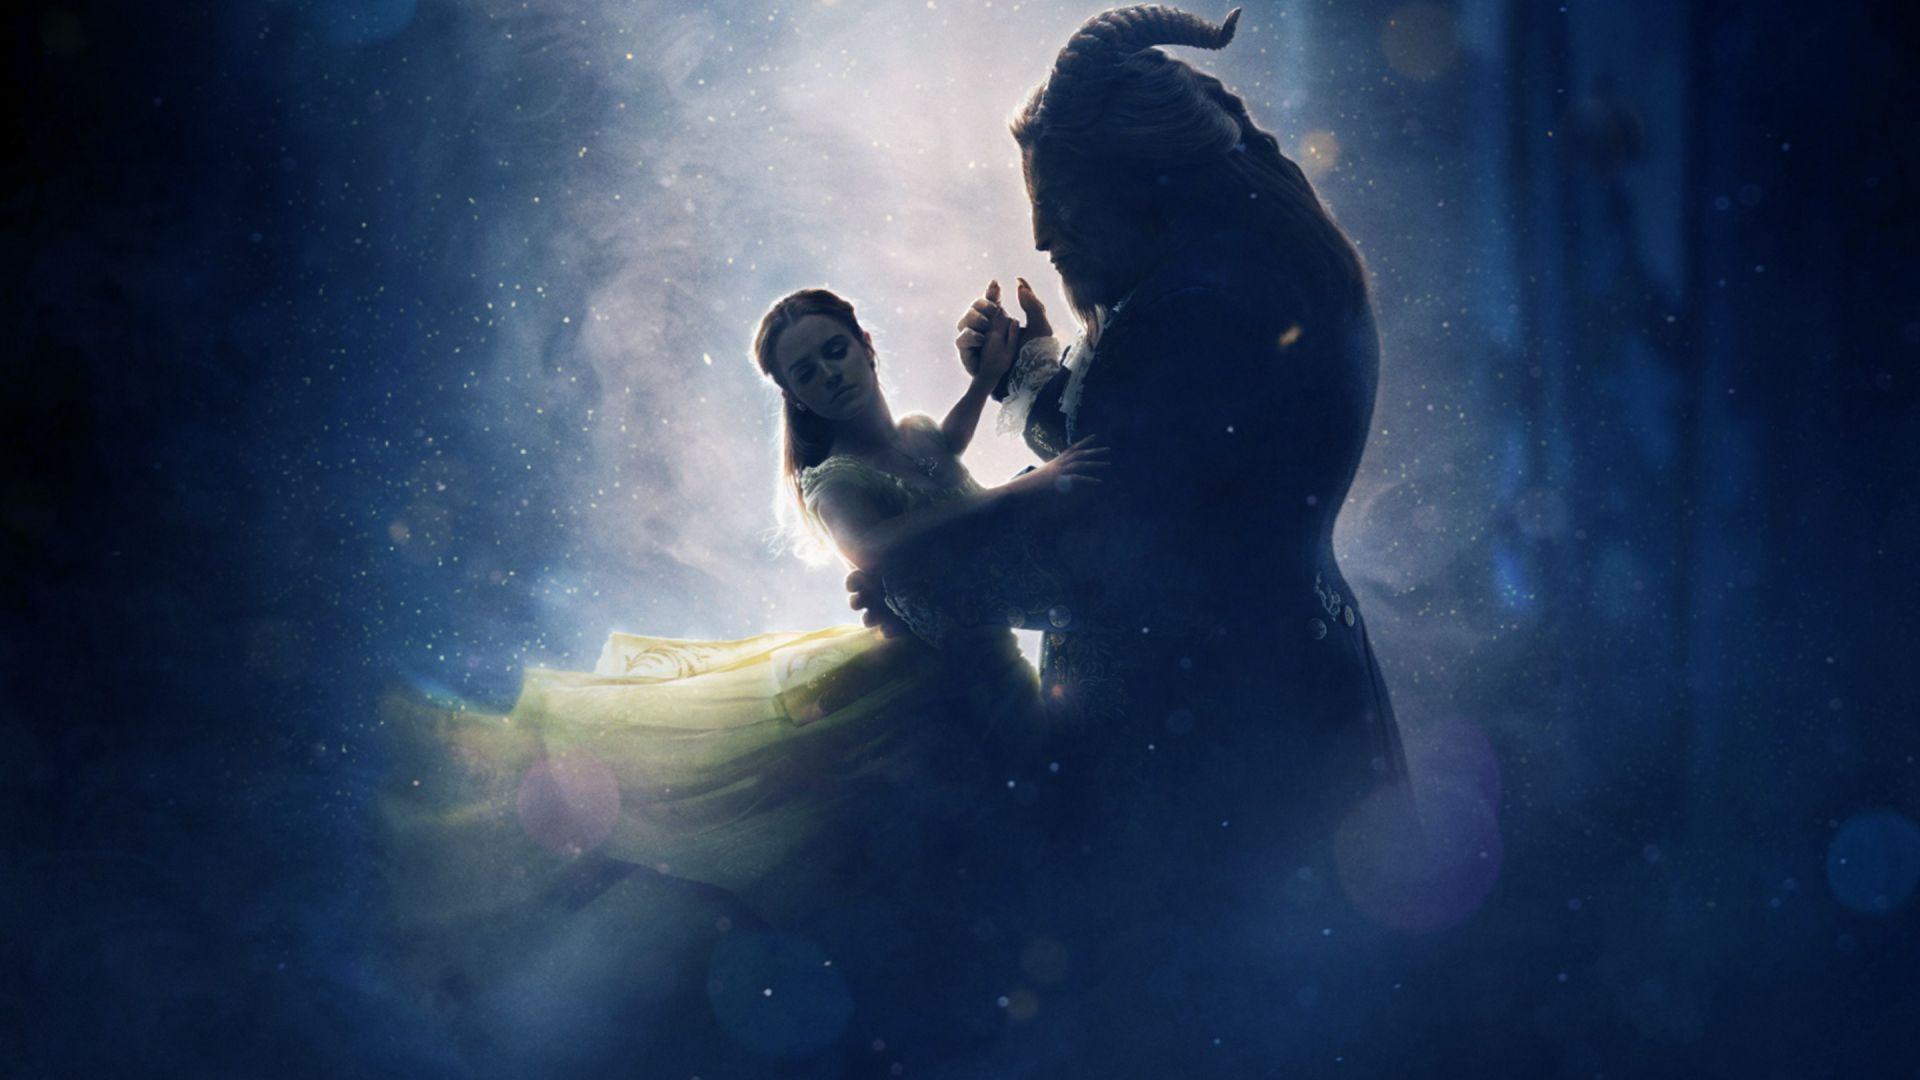 Beauty and the beast movie poster 24 x 40